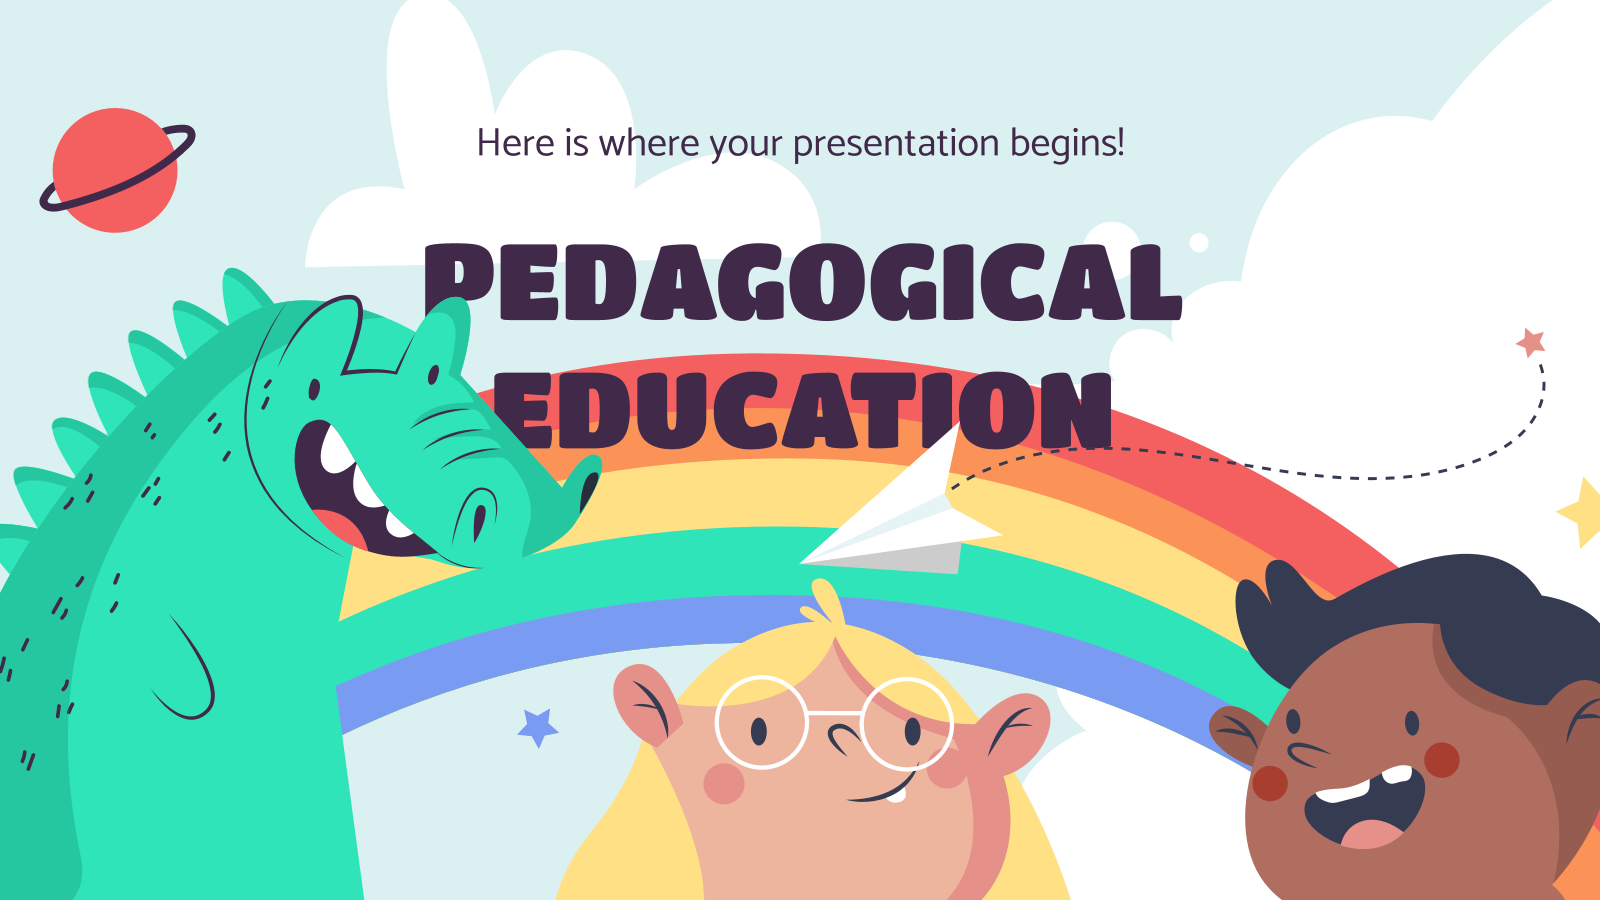 Pedagogical Education presentation template